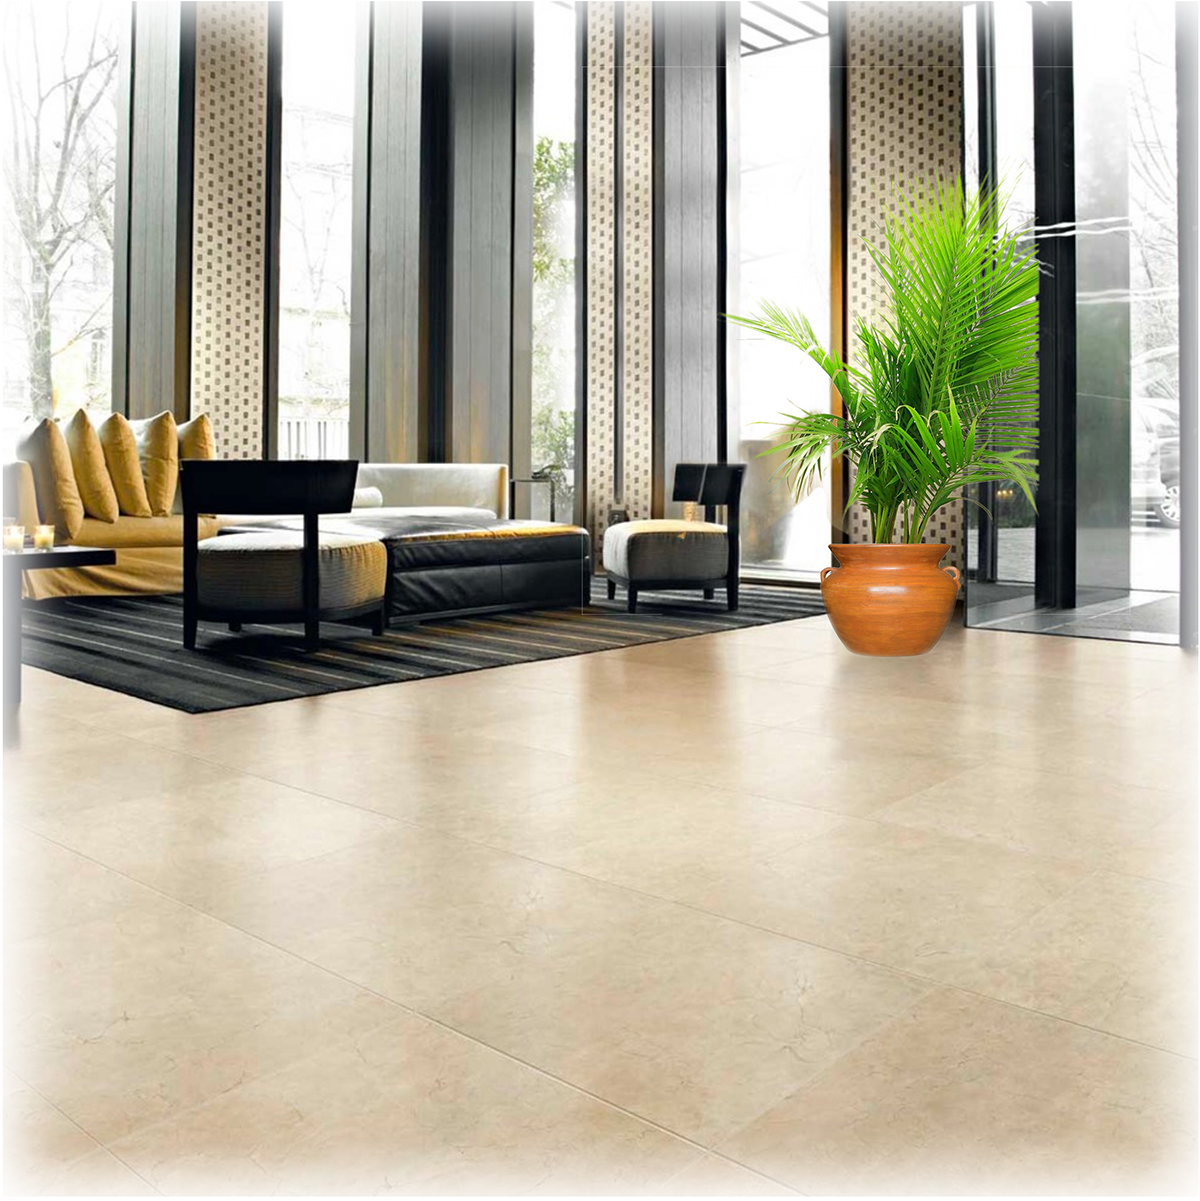 Porcelain Tile offered by Foster Flooring for high quality stone